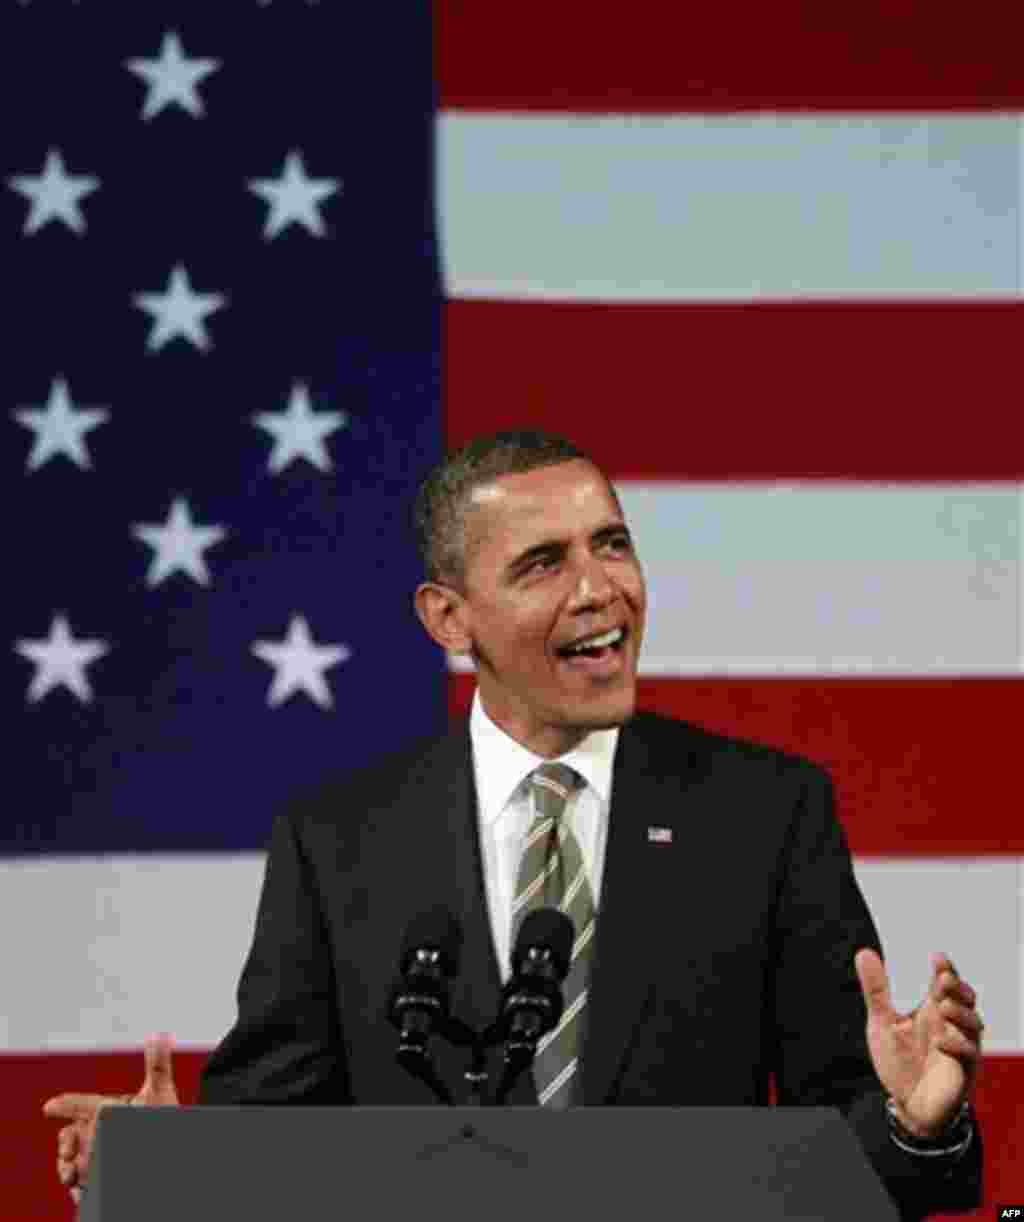 President Barack Obama sings before speaking at a campaign event, Thursday, Jan. 19, 2012, at the Apollo Theatre in the Harlem neighborhood of New York. (AP Photo/Haraz N. Ghanbari)